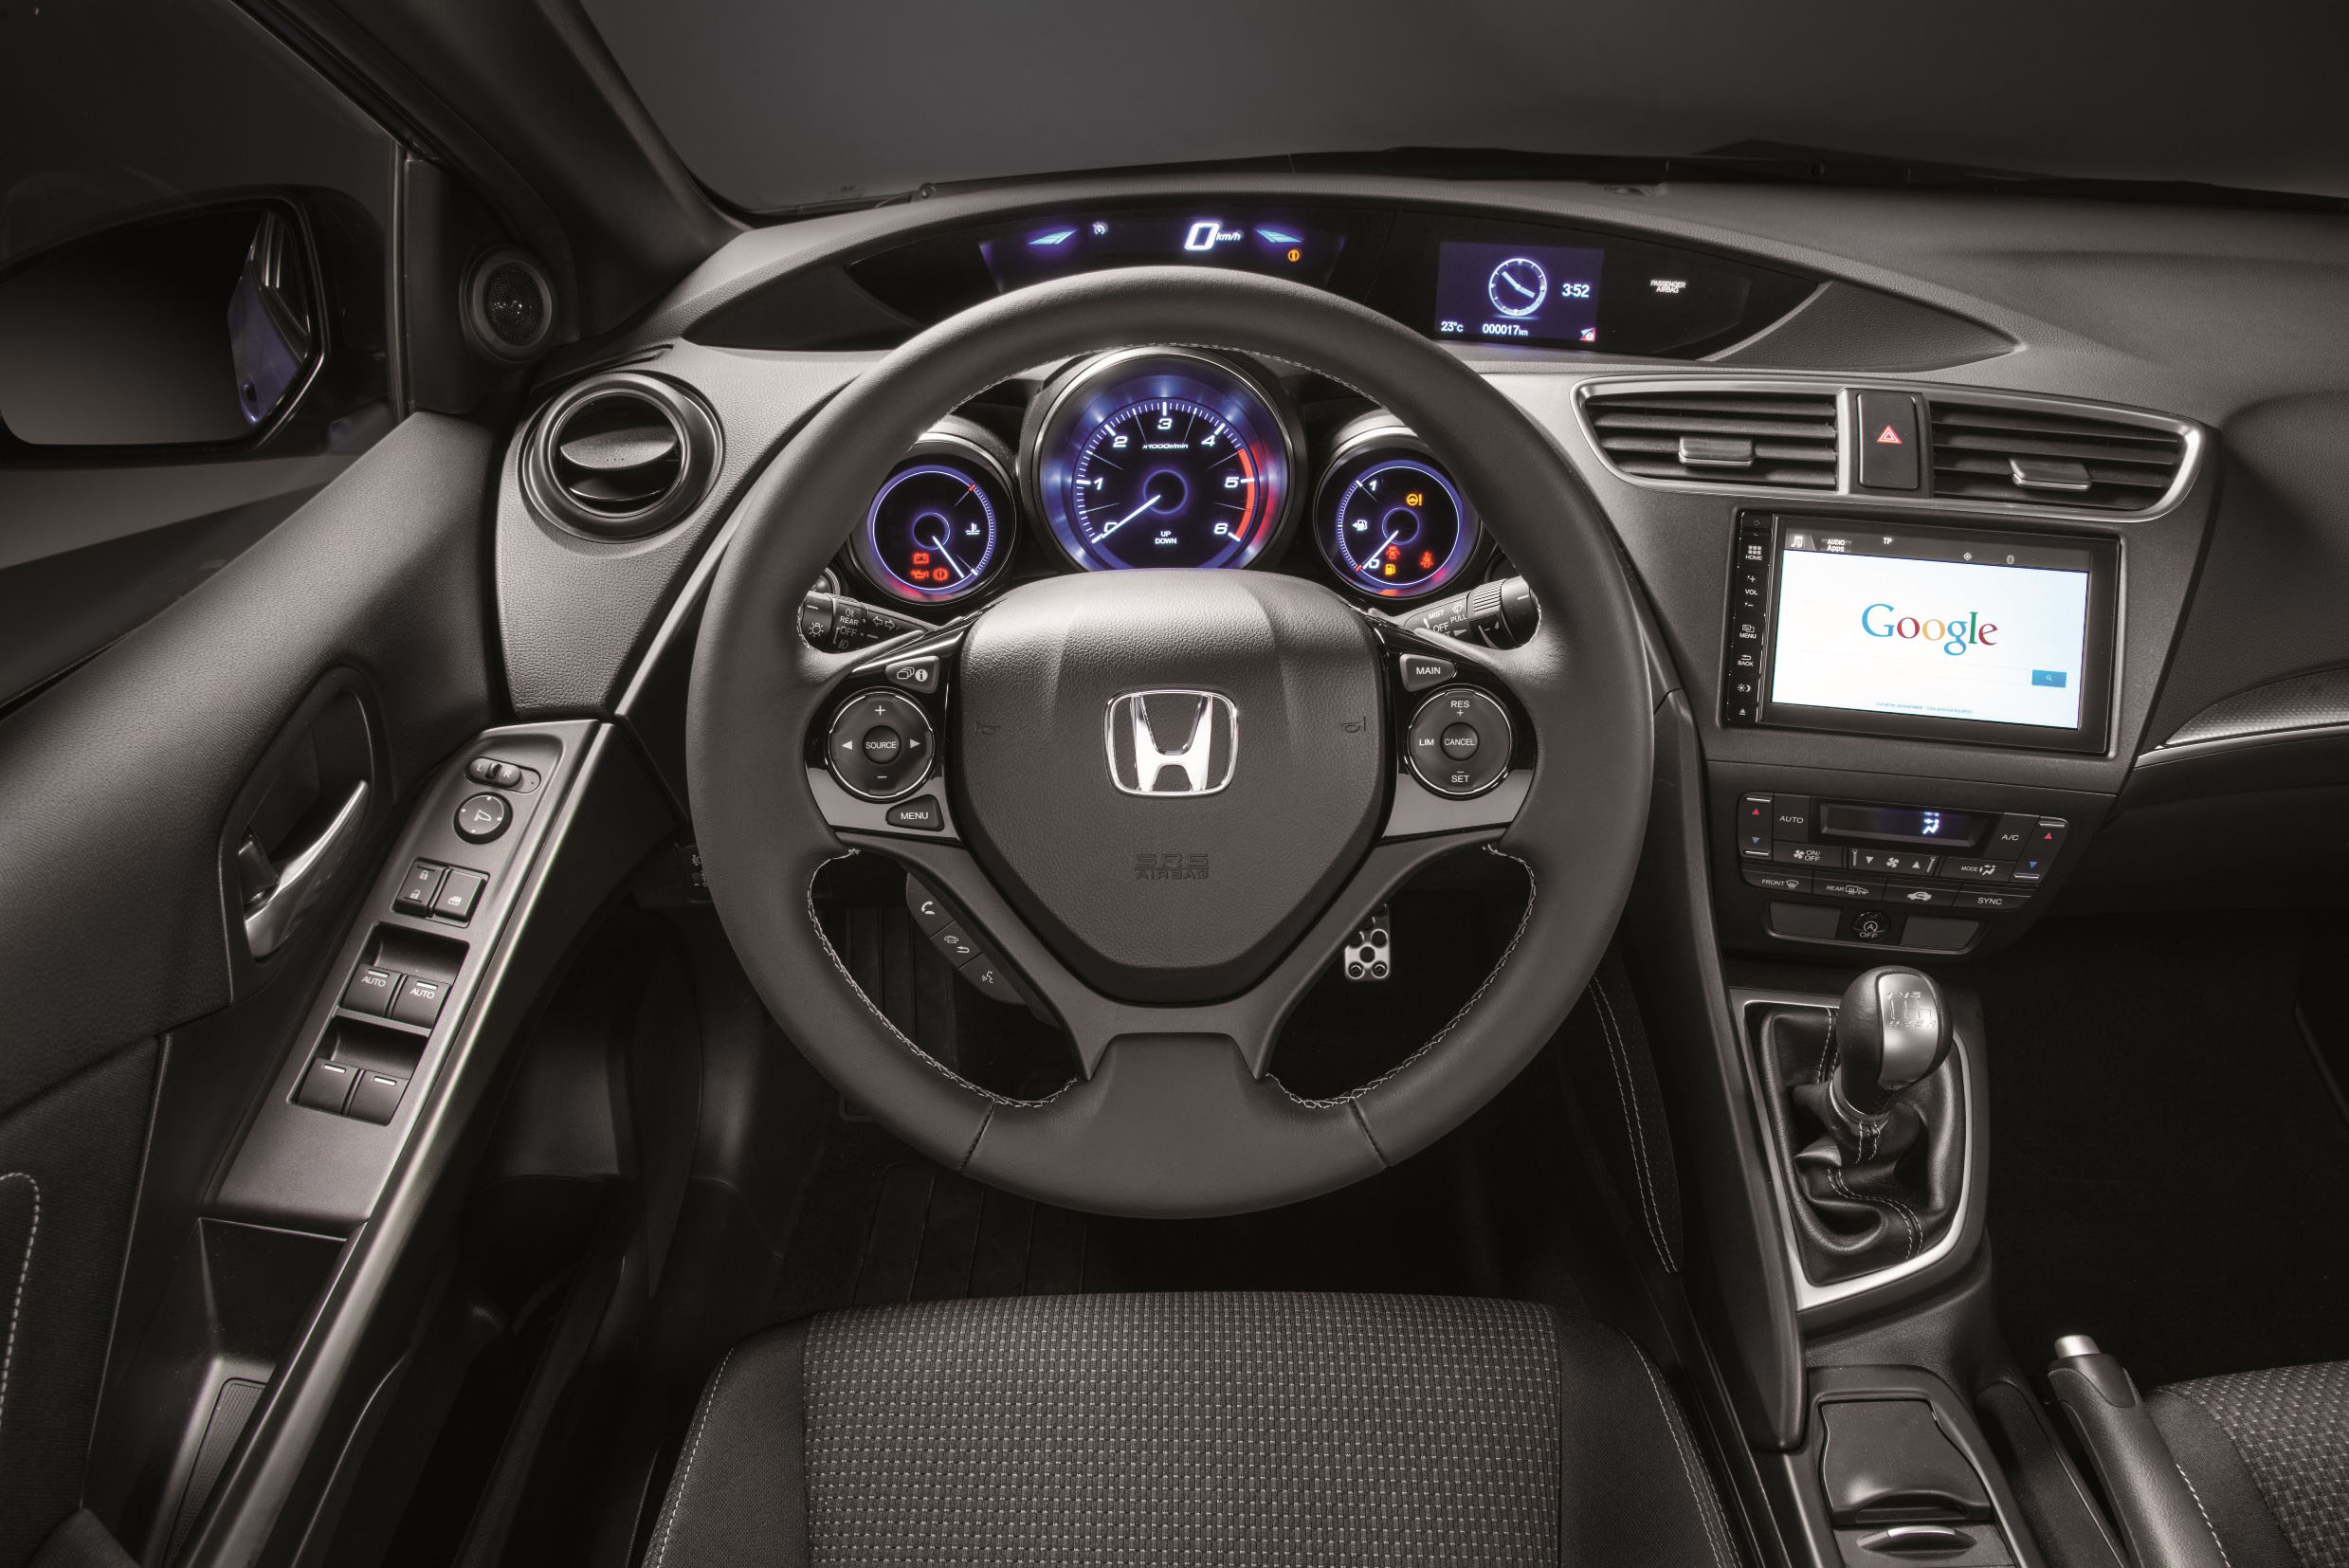 17 CIVIC SPORT INTERIOR